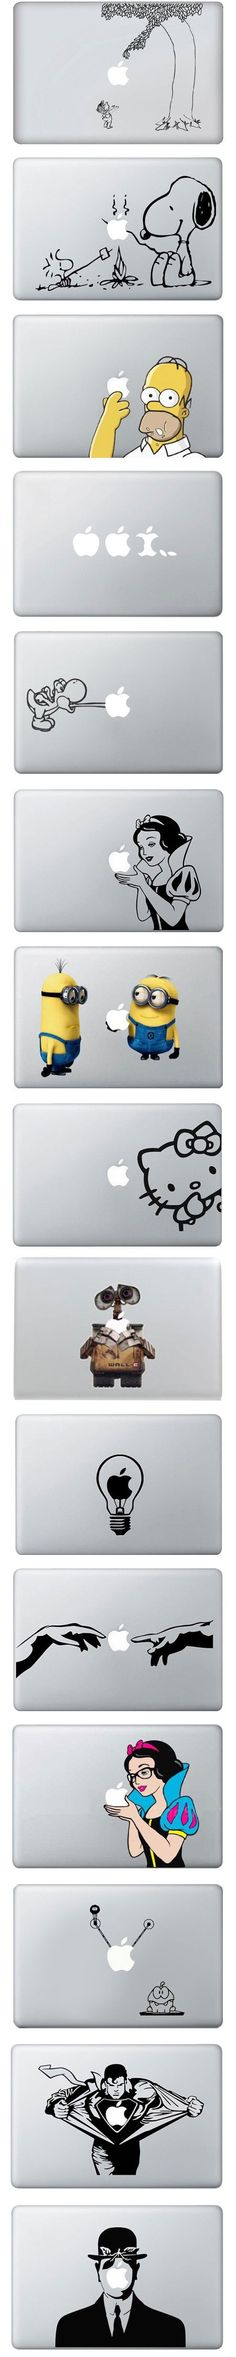 MacBook Vinyl Covers  #stickers #MacBook #apple